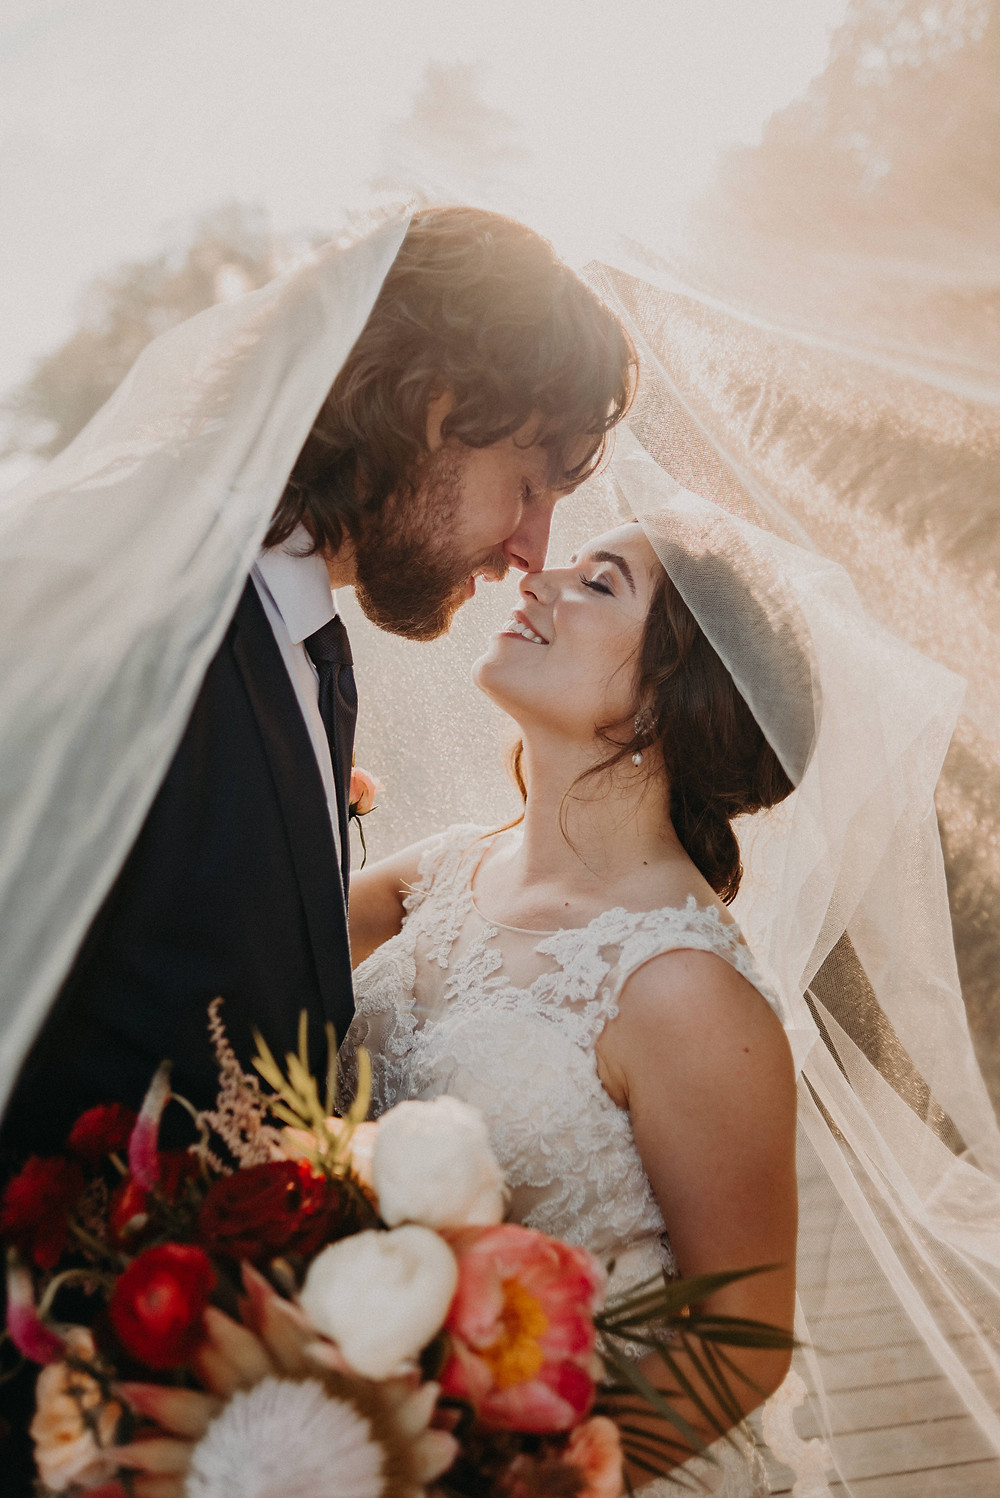 Bride and Groom under the veil with a colorful bouquet